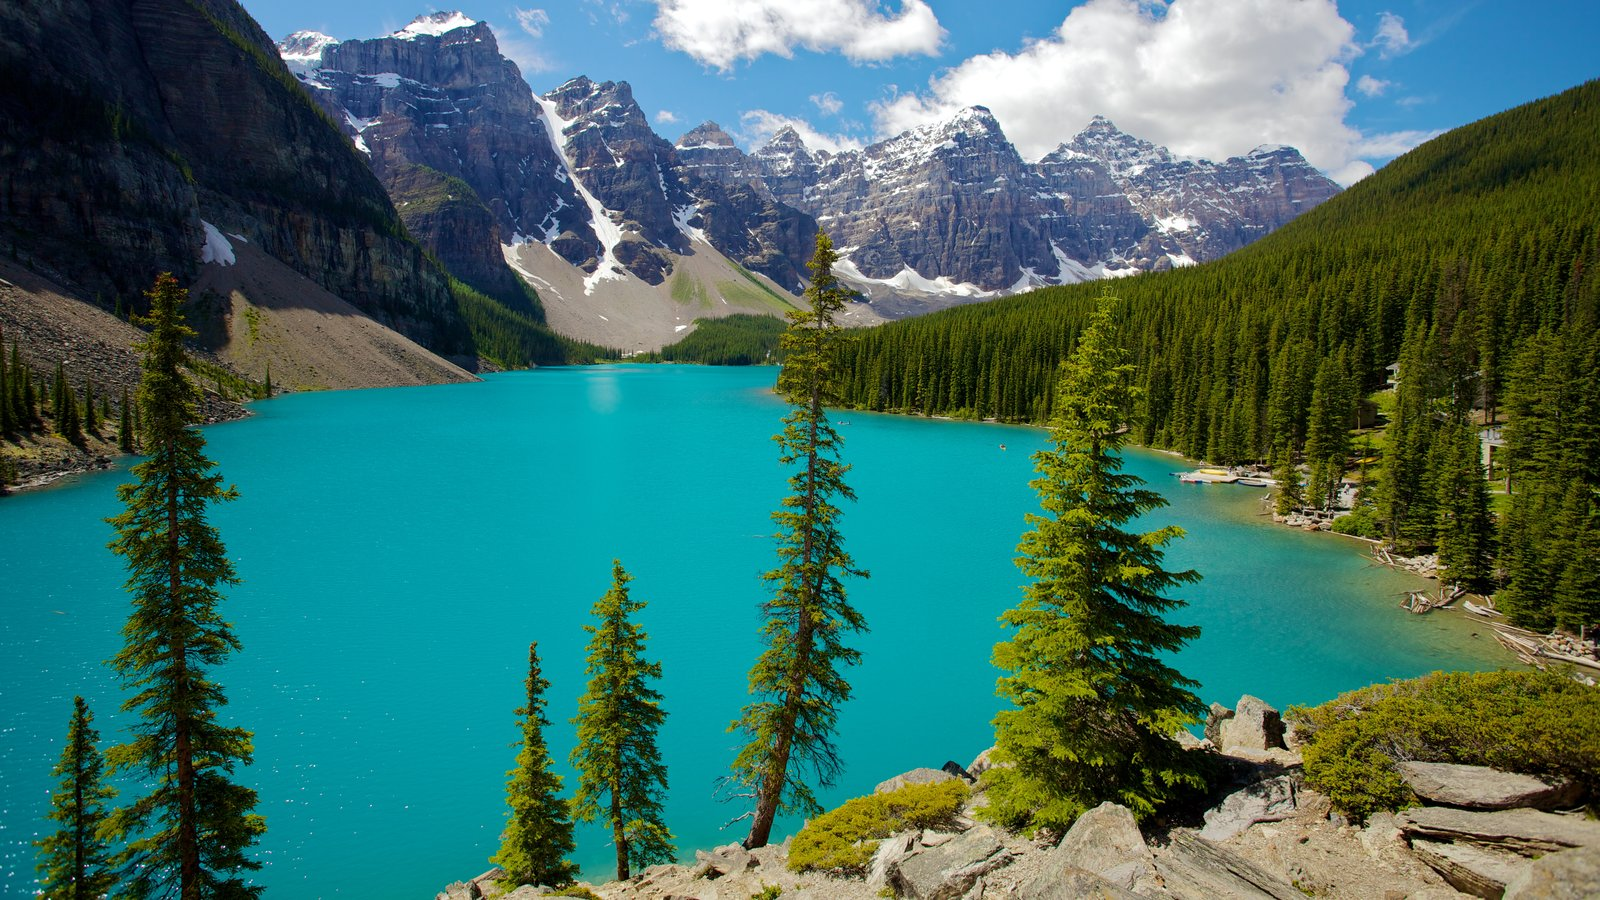 Moraine Lake showing mountains, a lake or waterhole and landscape views